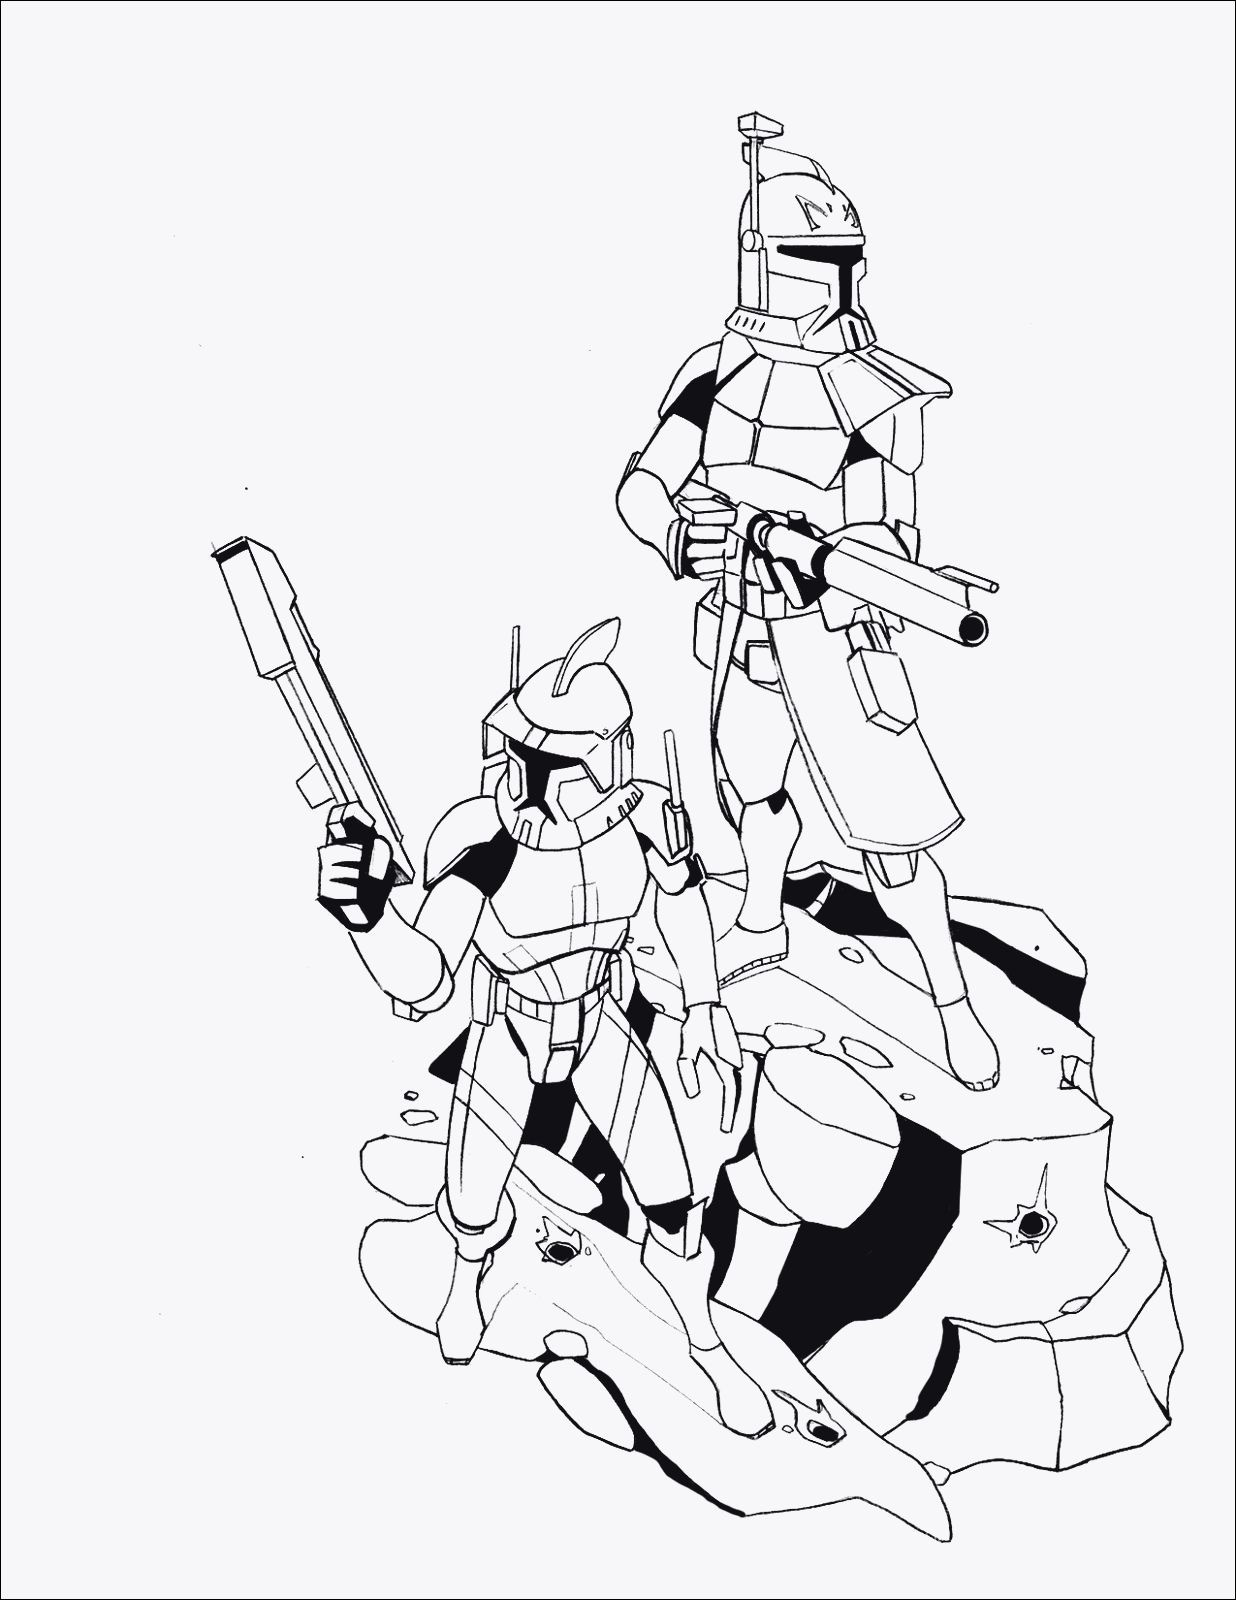 Ausmalbilder Star Wars the Clone Wars Das Beste Von 13 Inspirational Star Wars the Clone Wars Coloring Pages Printable Das Bild